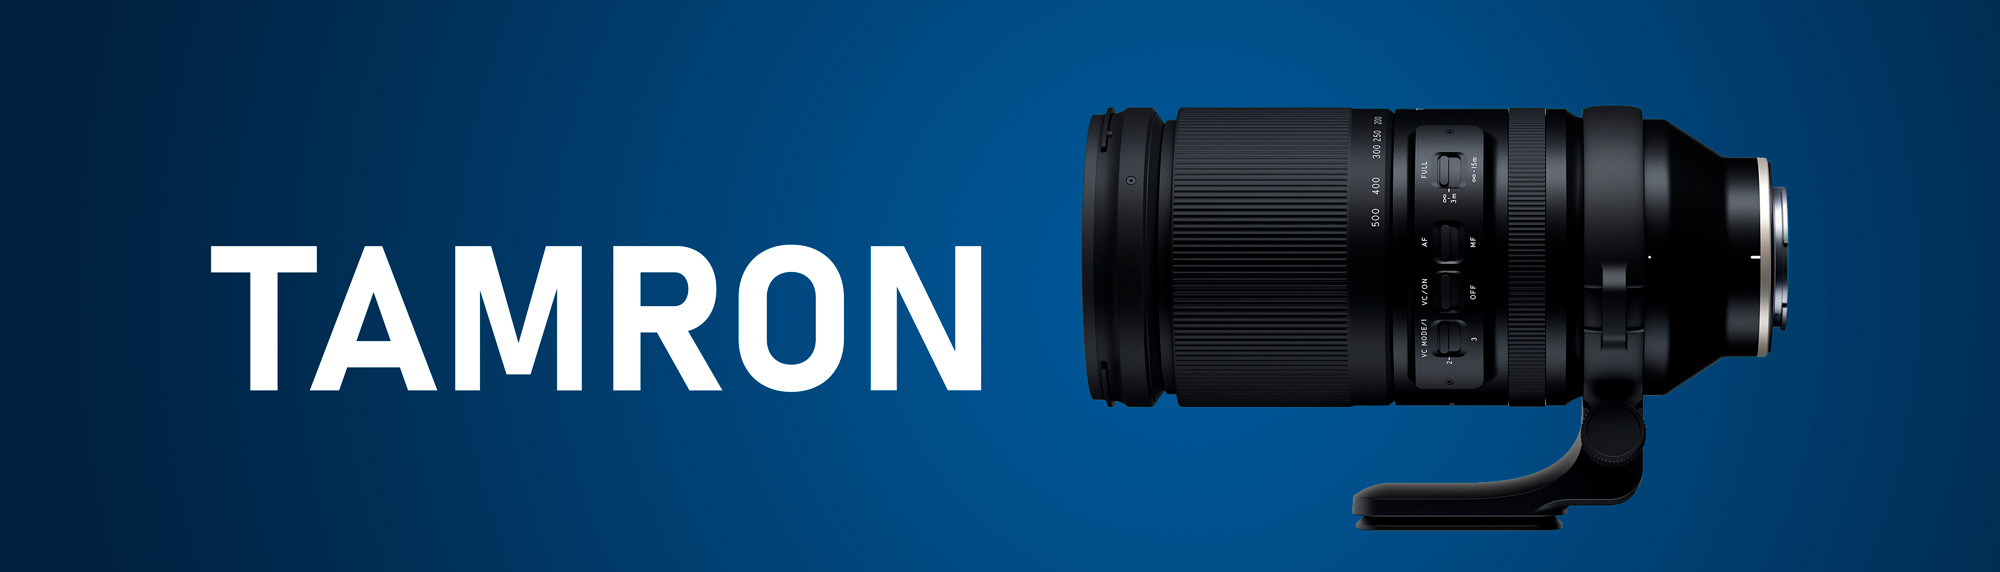 Tamron 150-500mm Review Banner